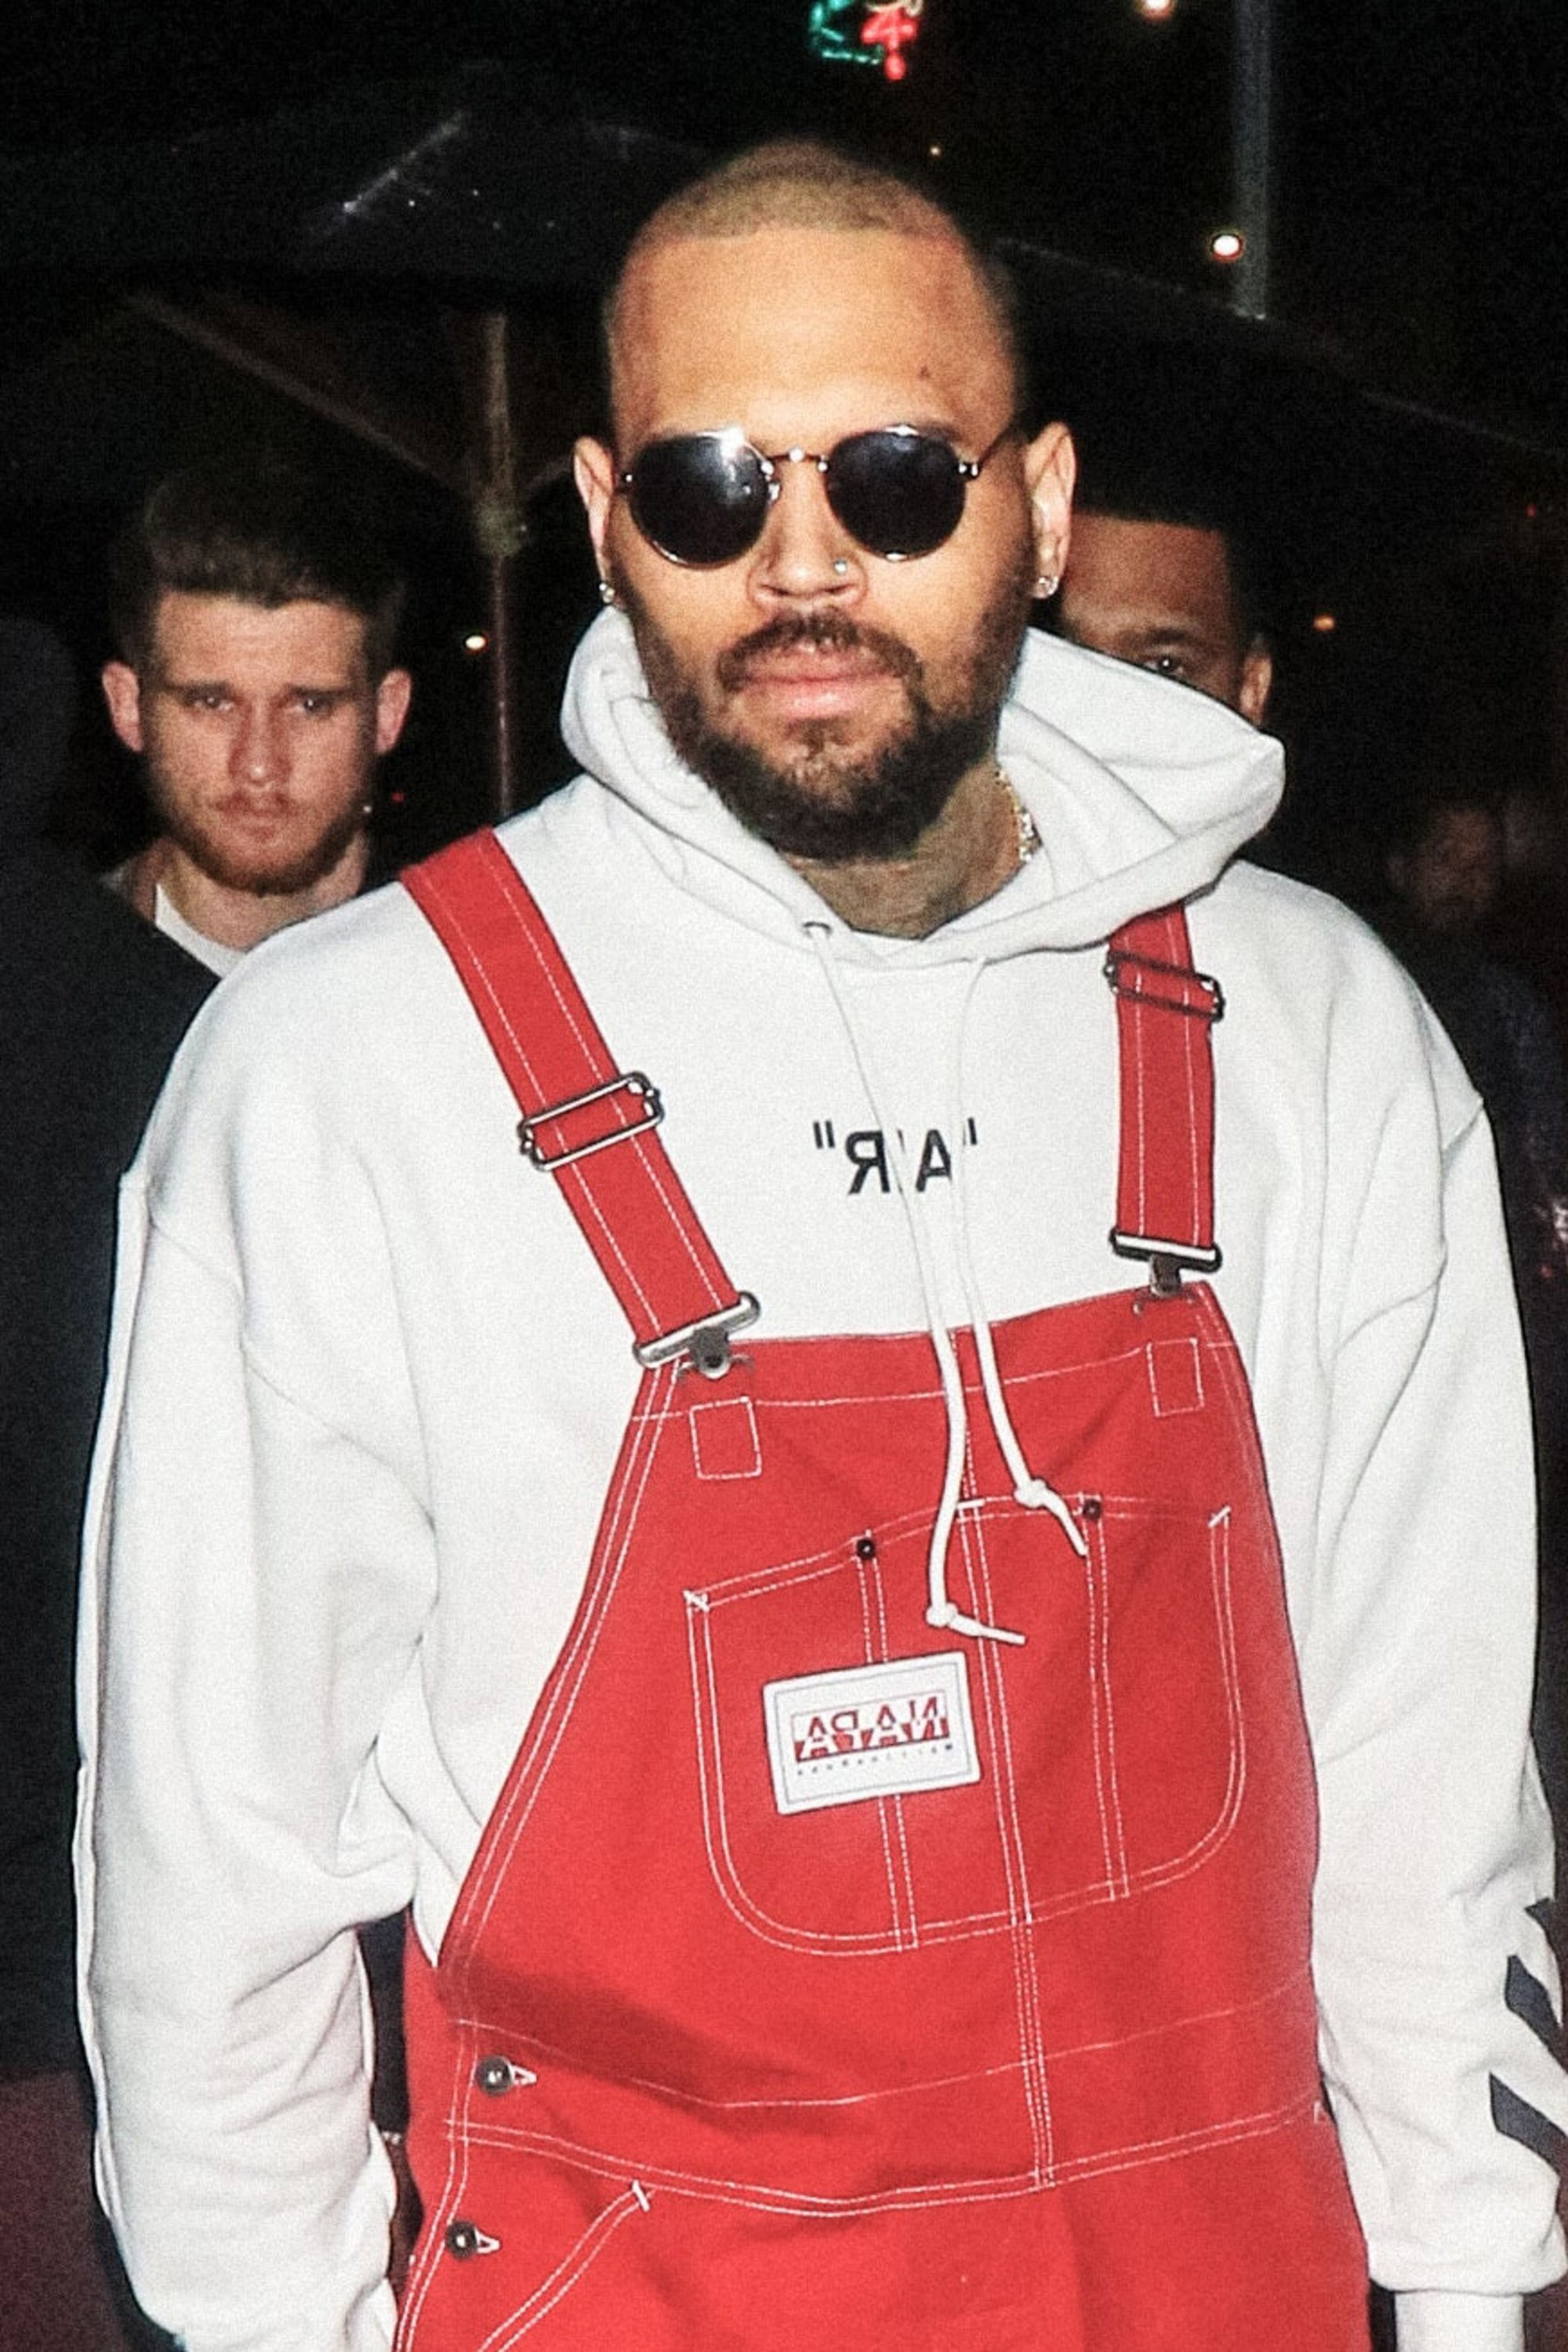 A stylish full beard like Chris Brown has.